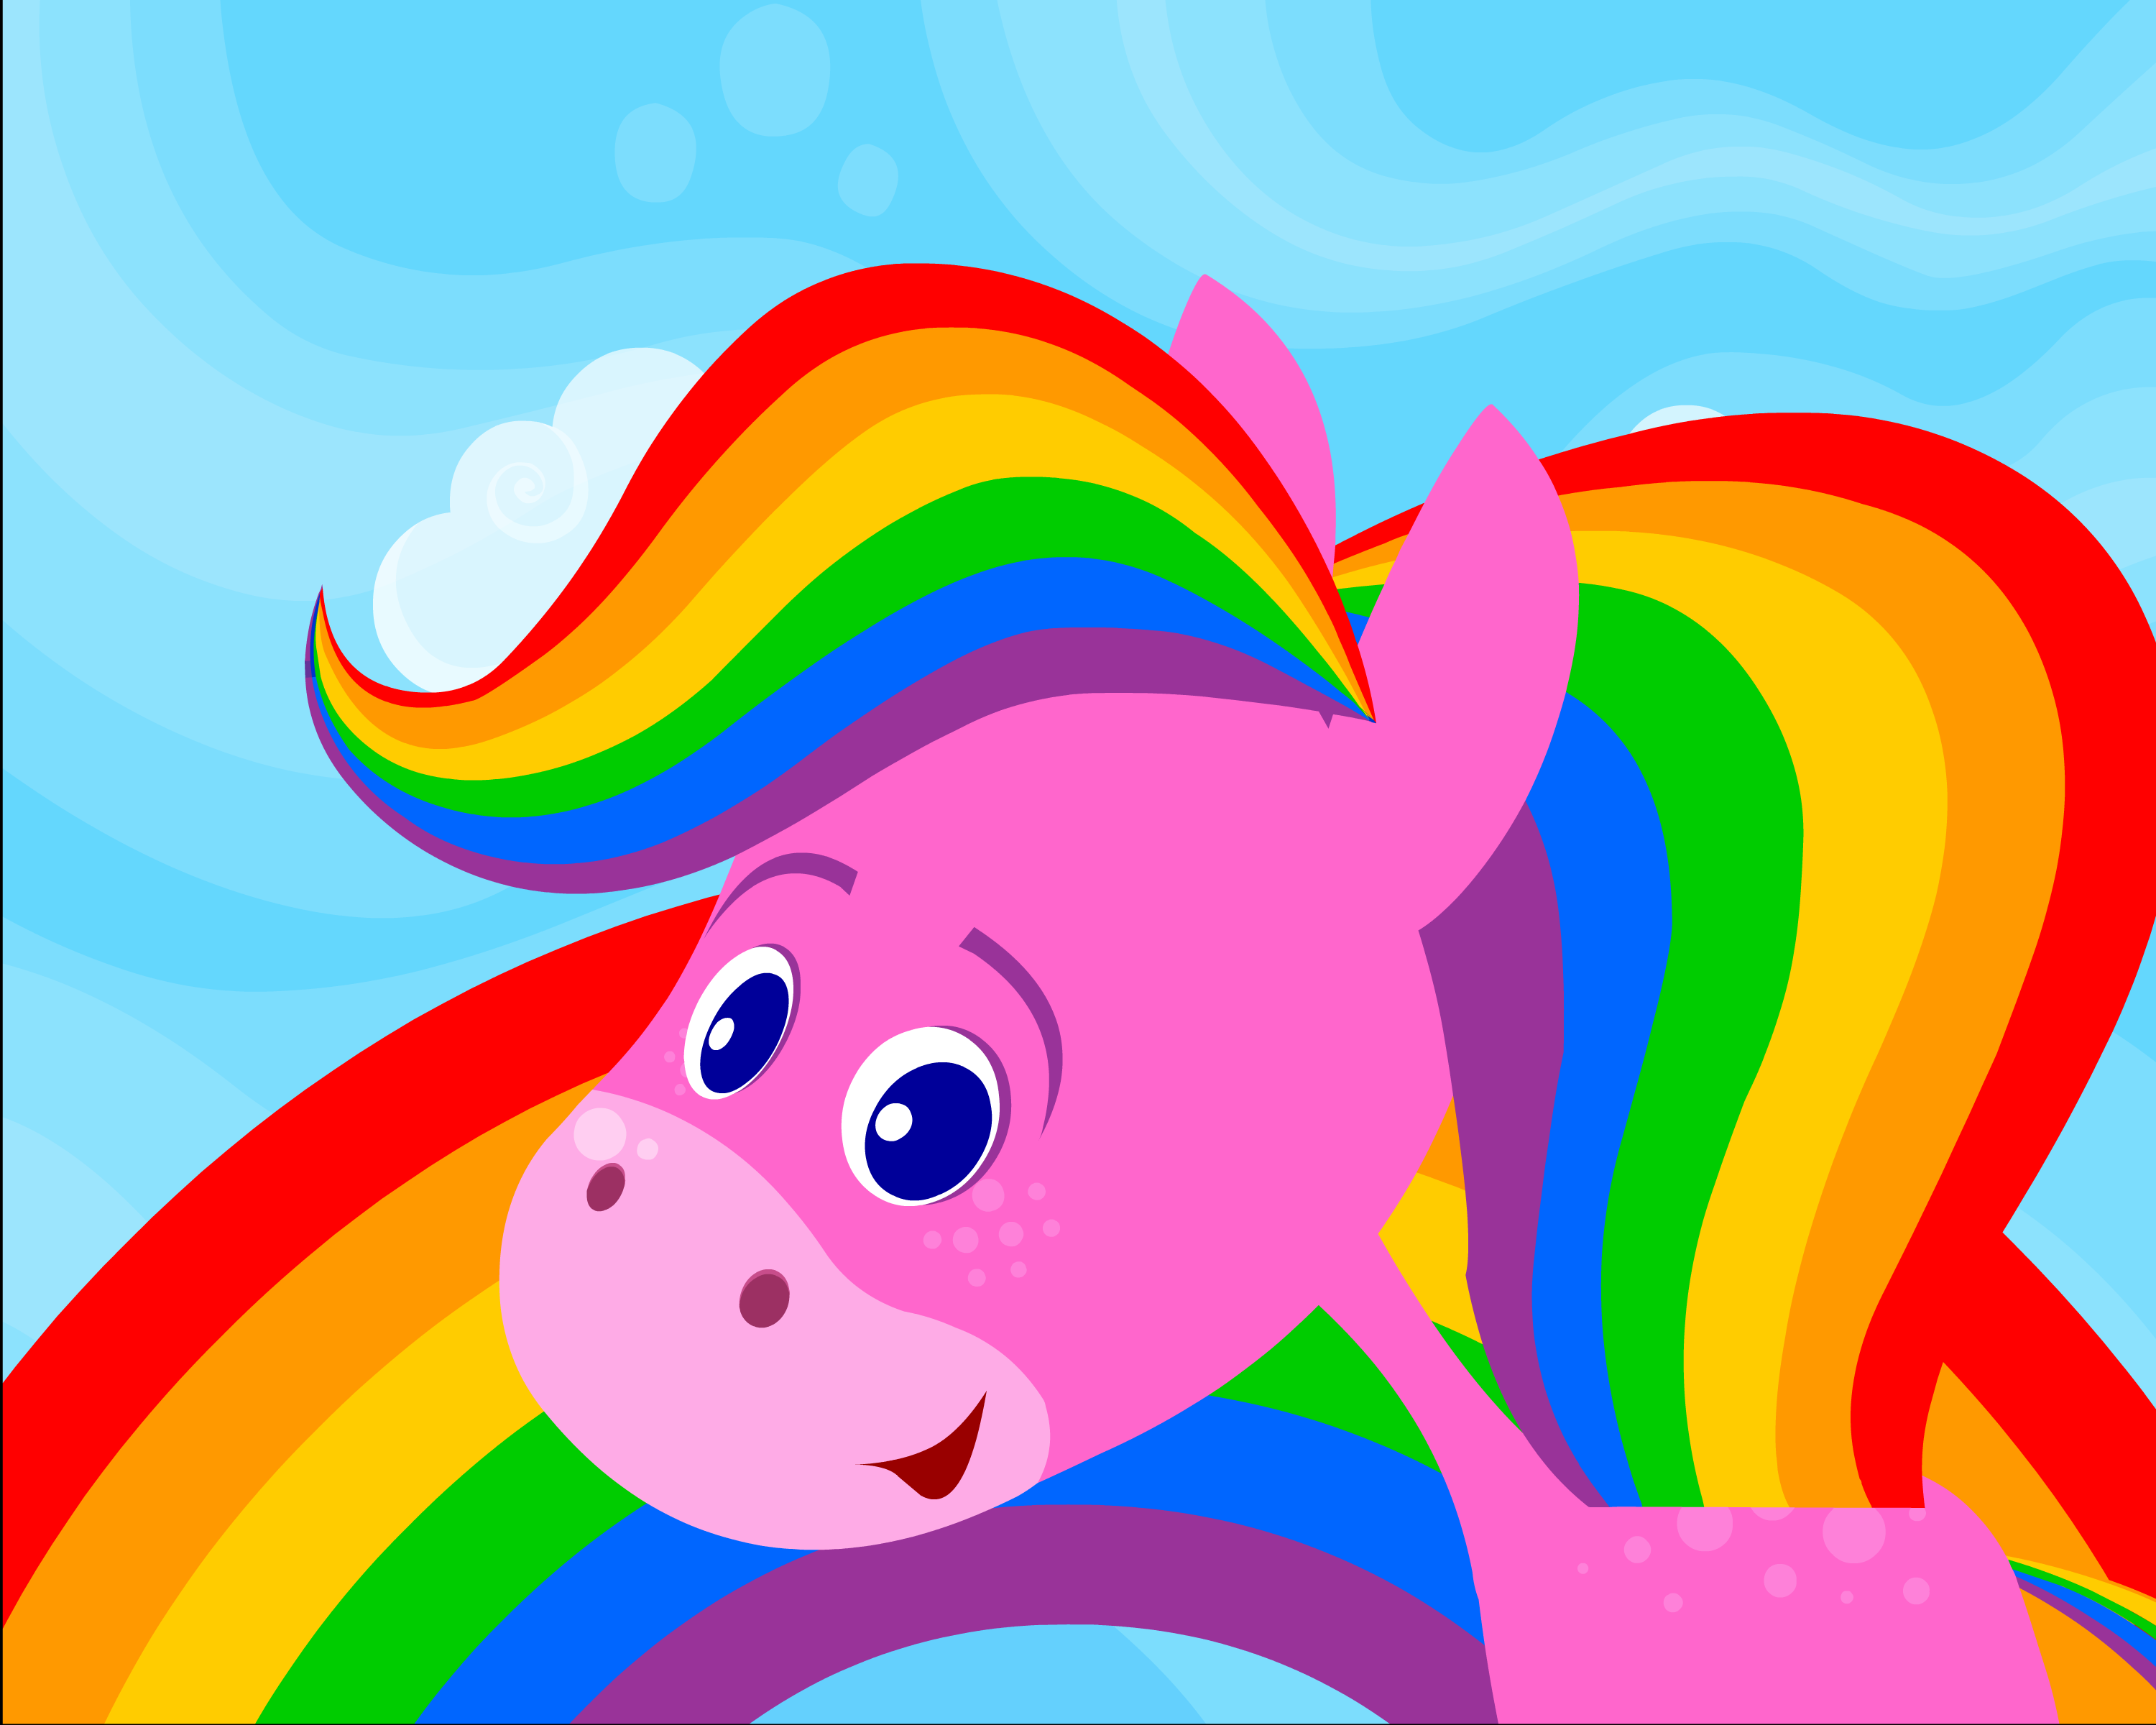 Rainbow Horse saddle up for a colorful journey as